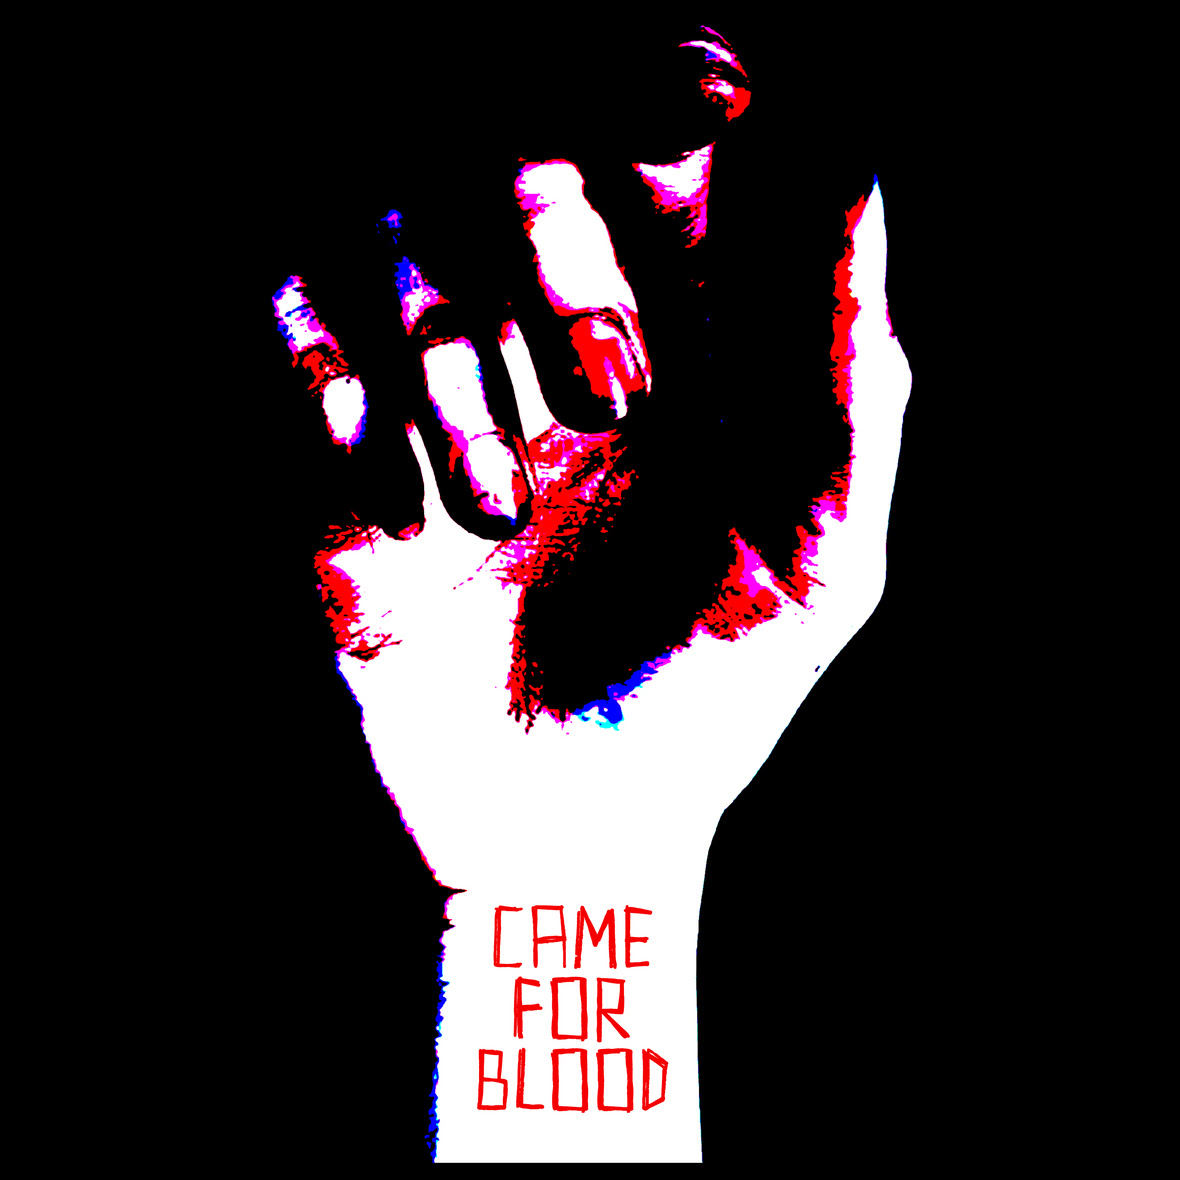 Came For Blood Artwork